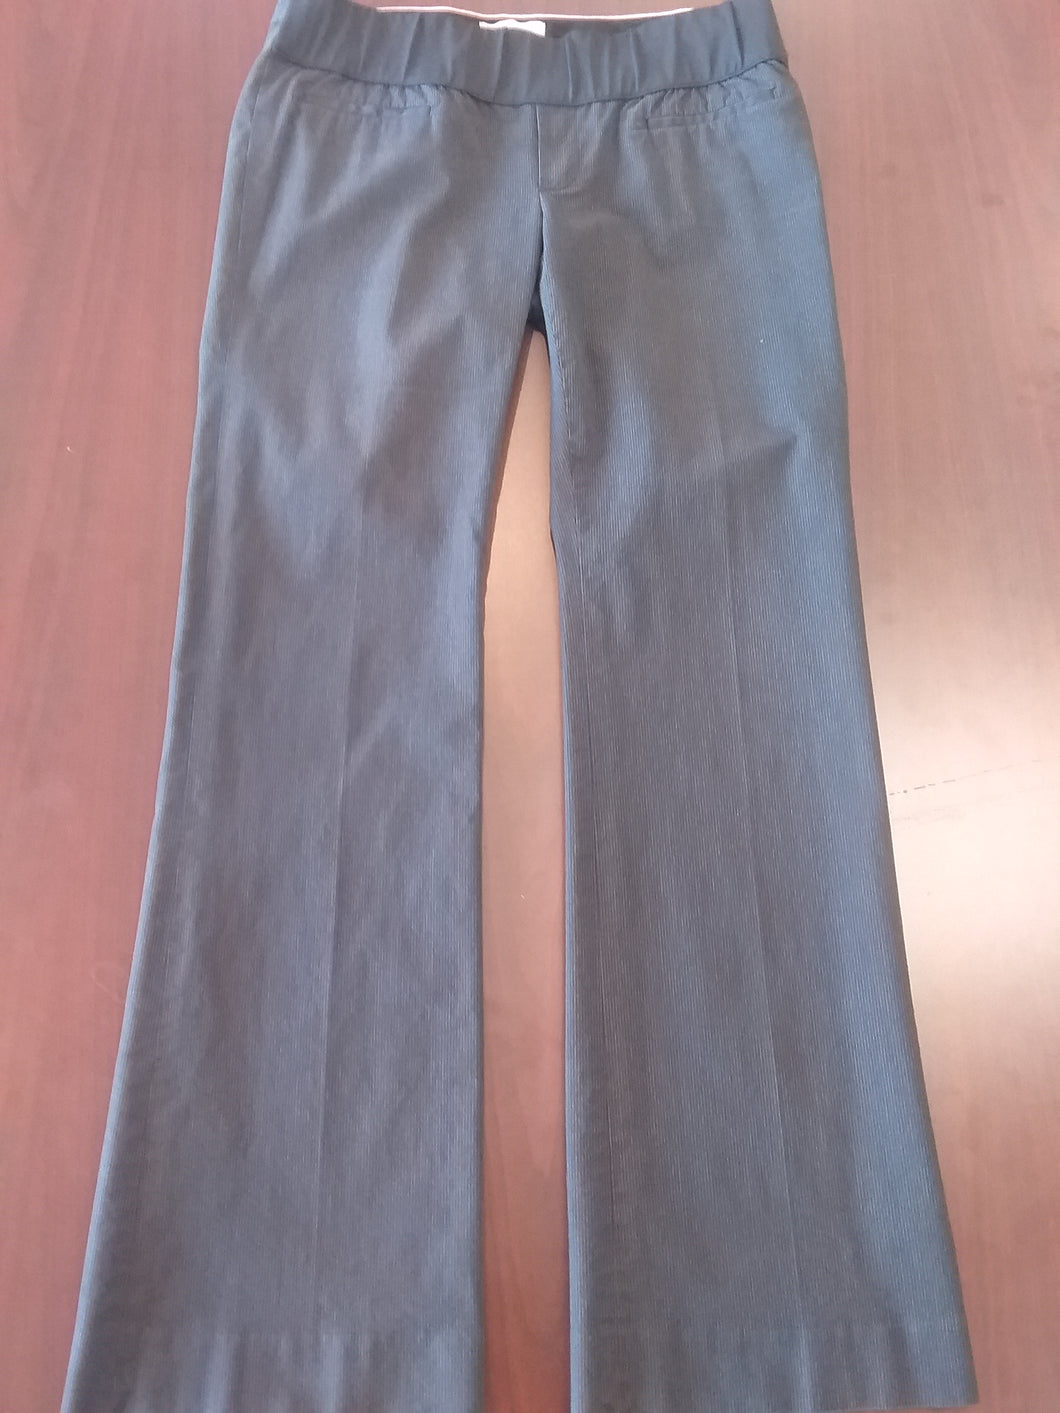 Size 6 Tall Gray Pin Stripe Under Belly Panel Maternity Pants